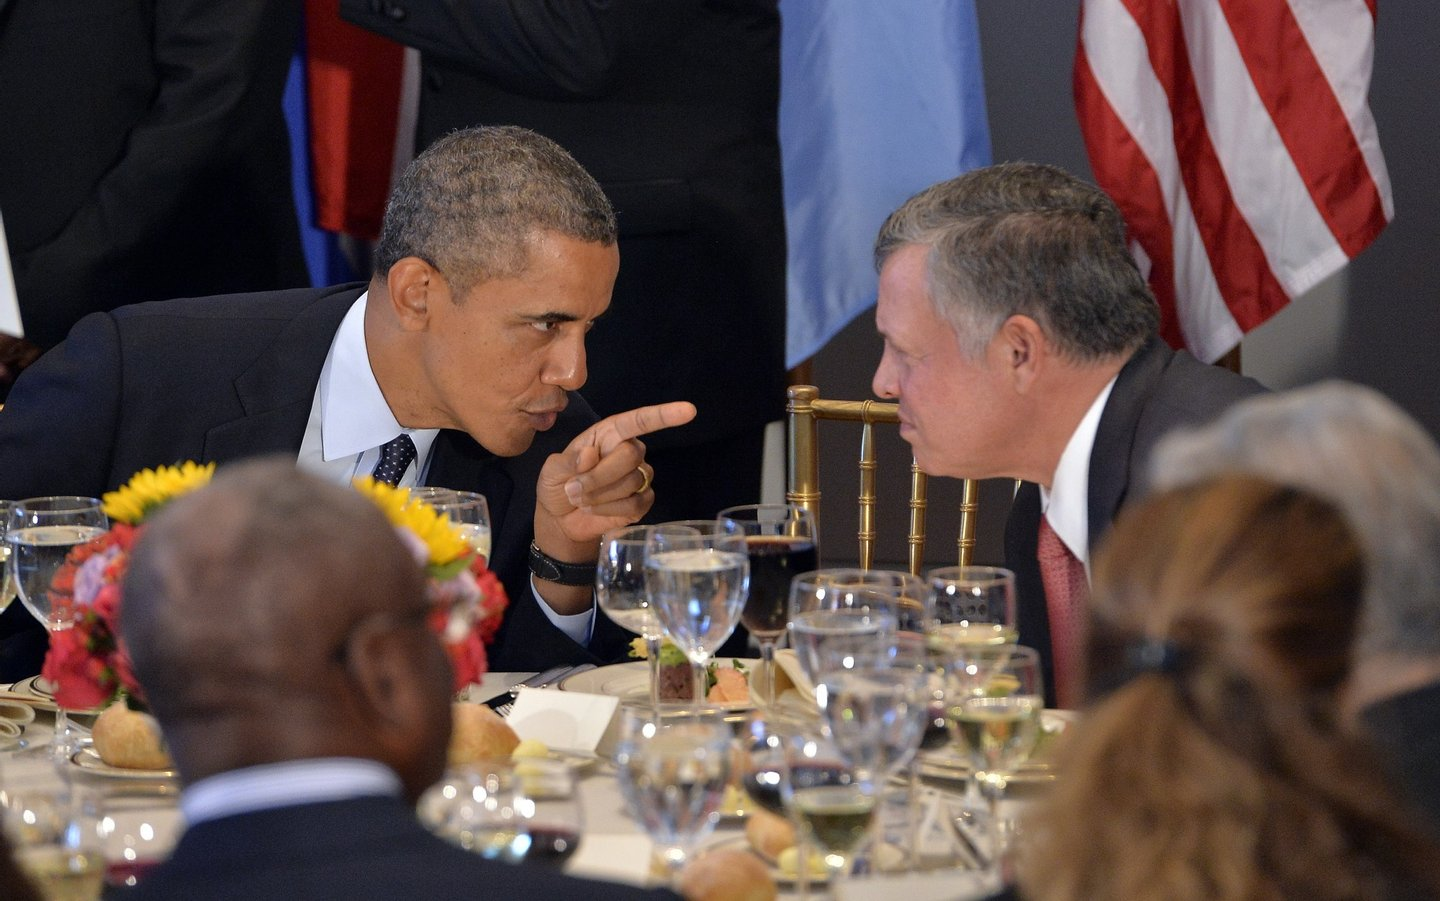 US President Barack Obama (L) chats with Jordan's King Abdullah II during a luncheon hosted by UN Secretary General Ban Ki-Moon on the sideline of the 68th United Nations General Assembly at the UN in New York on September 24, 2013. Obama on demanded that the world take action on Syria, saying that the regime must face consequences after the use of chemical weapons. Speaking before the UN General Assembly, Obama defended his threat of force against Syrian President Bashar al-Assad's regime and denounced critics who accuse the United States of inconsistency. AFP Photo/Jewel Samad        (Photo credit should read JEWEL SAMAD/AFP/Getty Images)